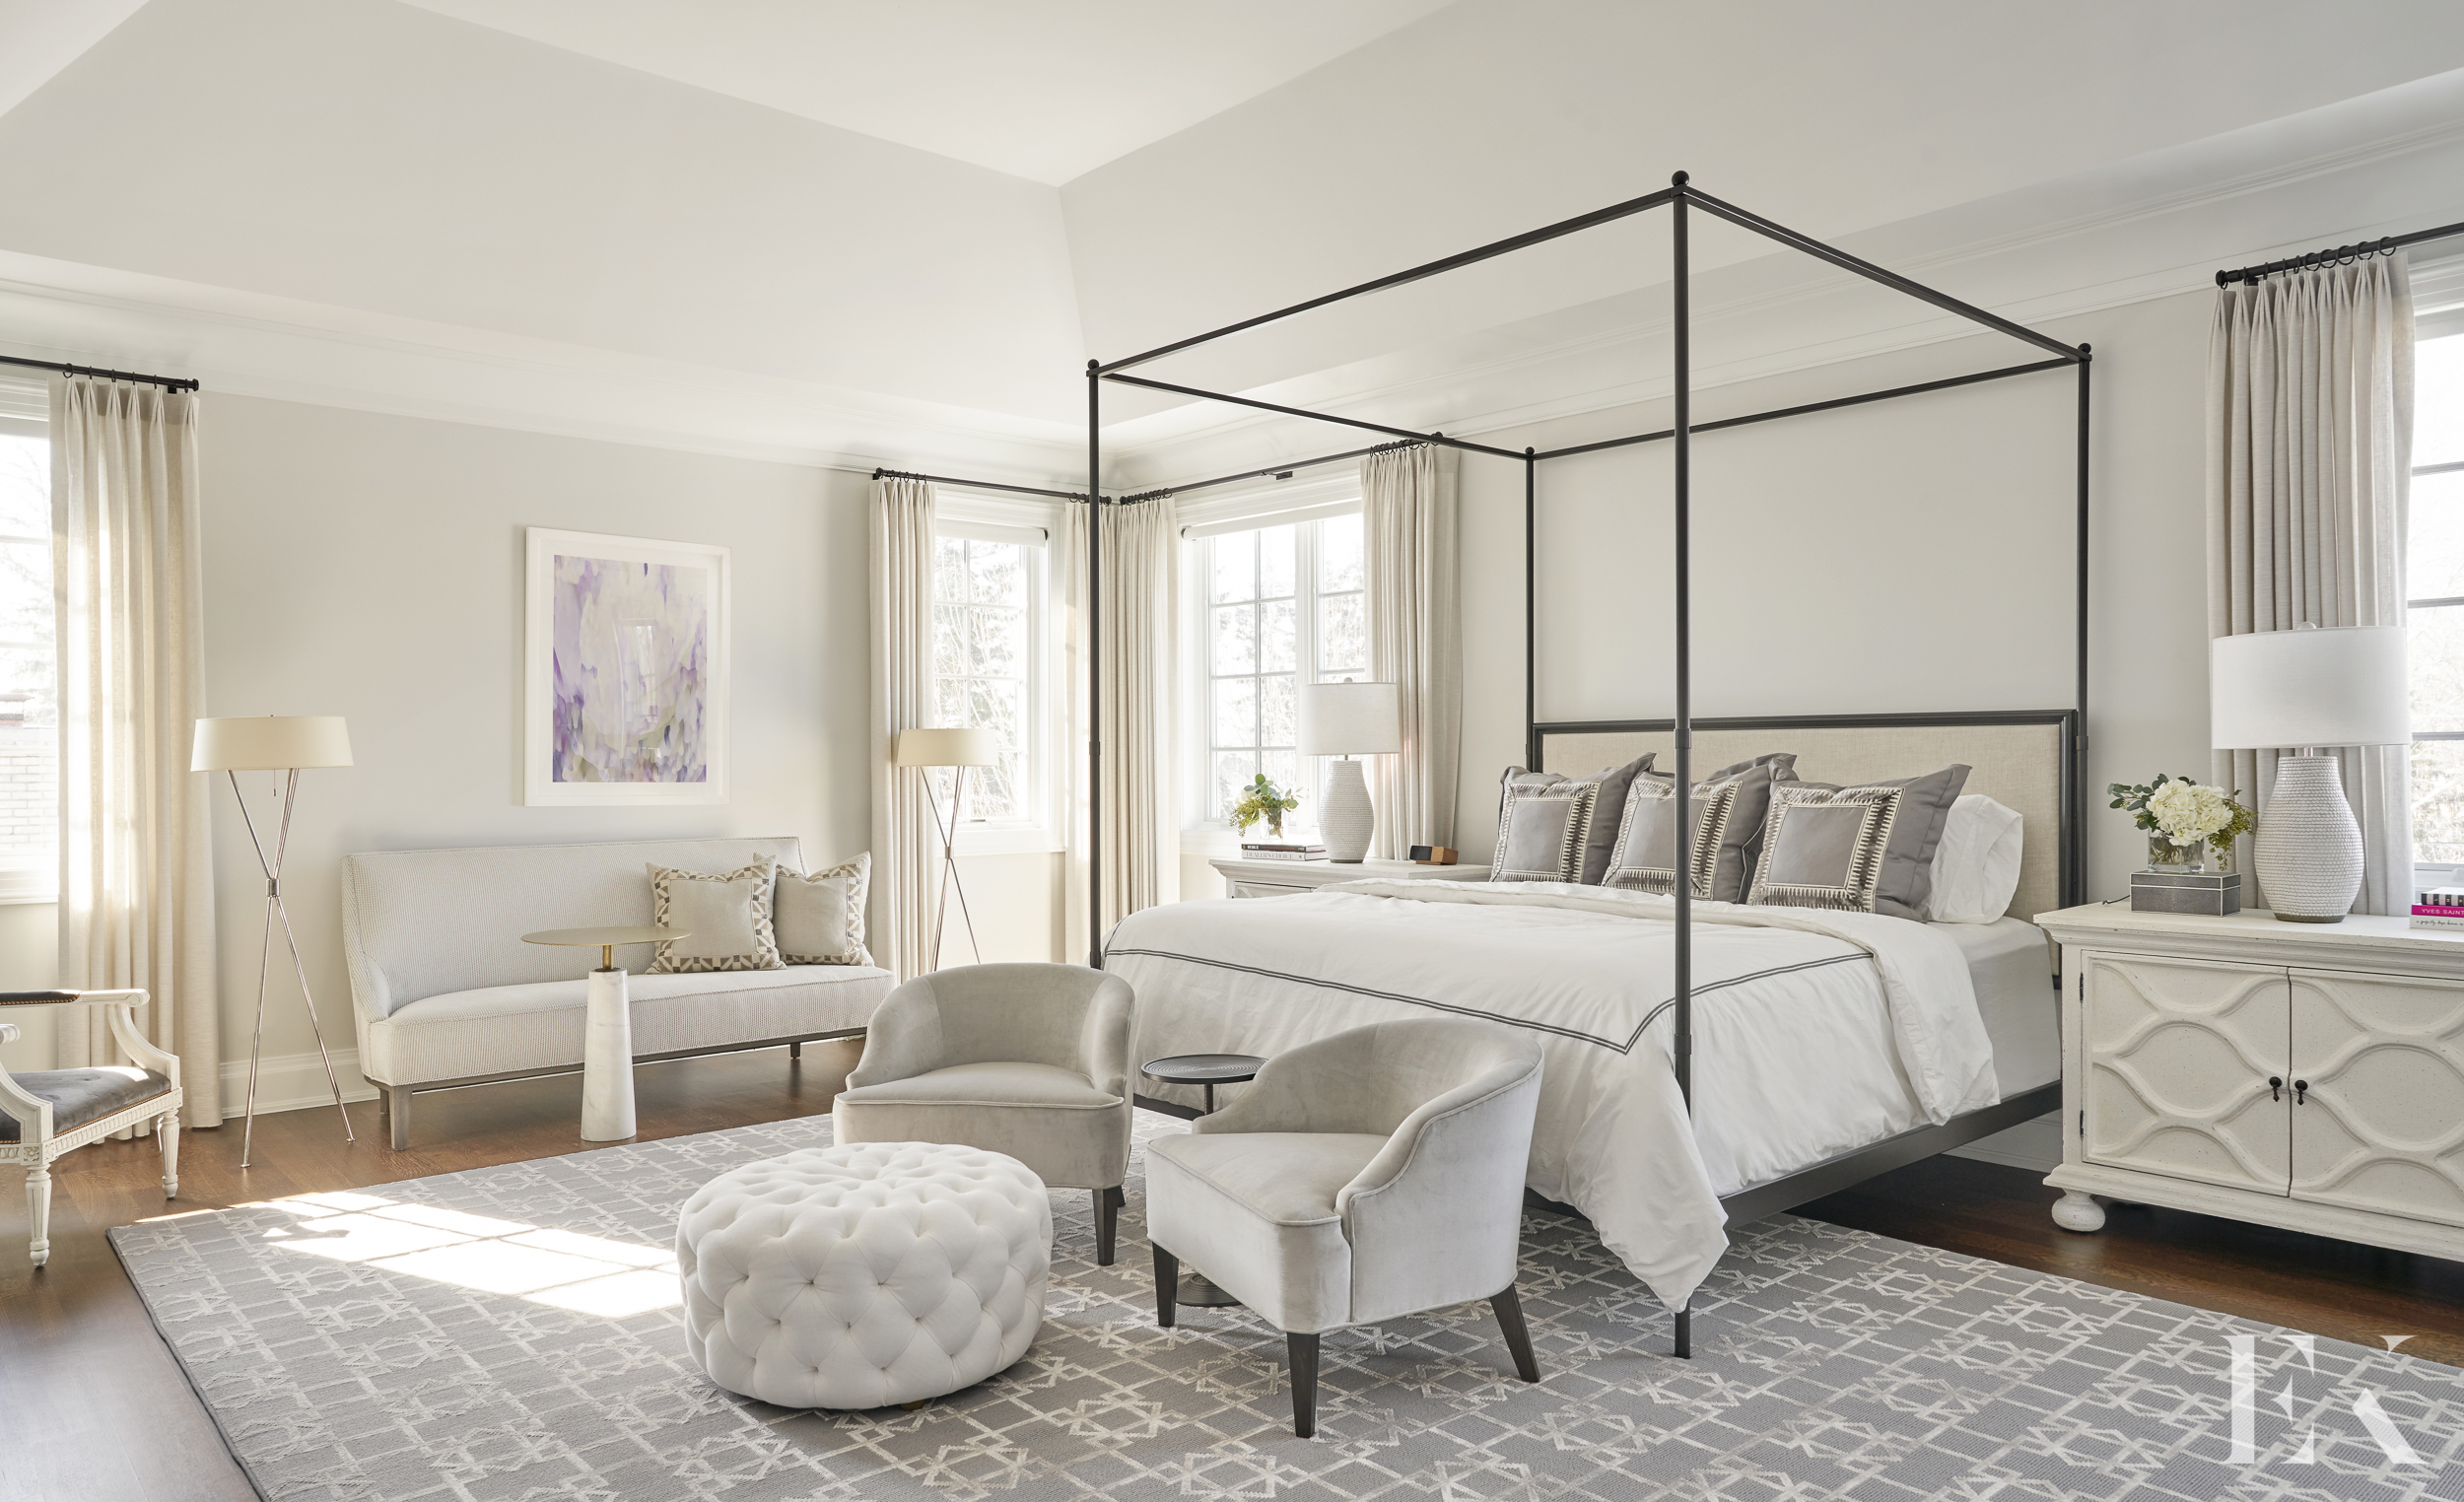 EKD, Large and Luxurious Master Bedroom